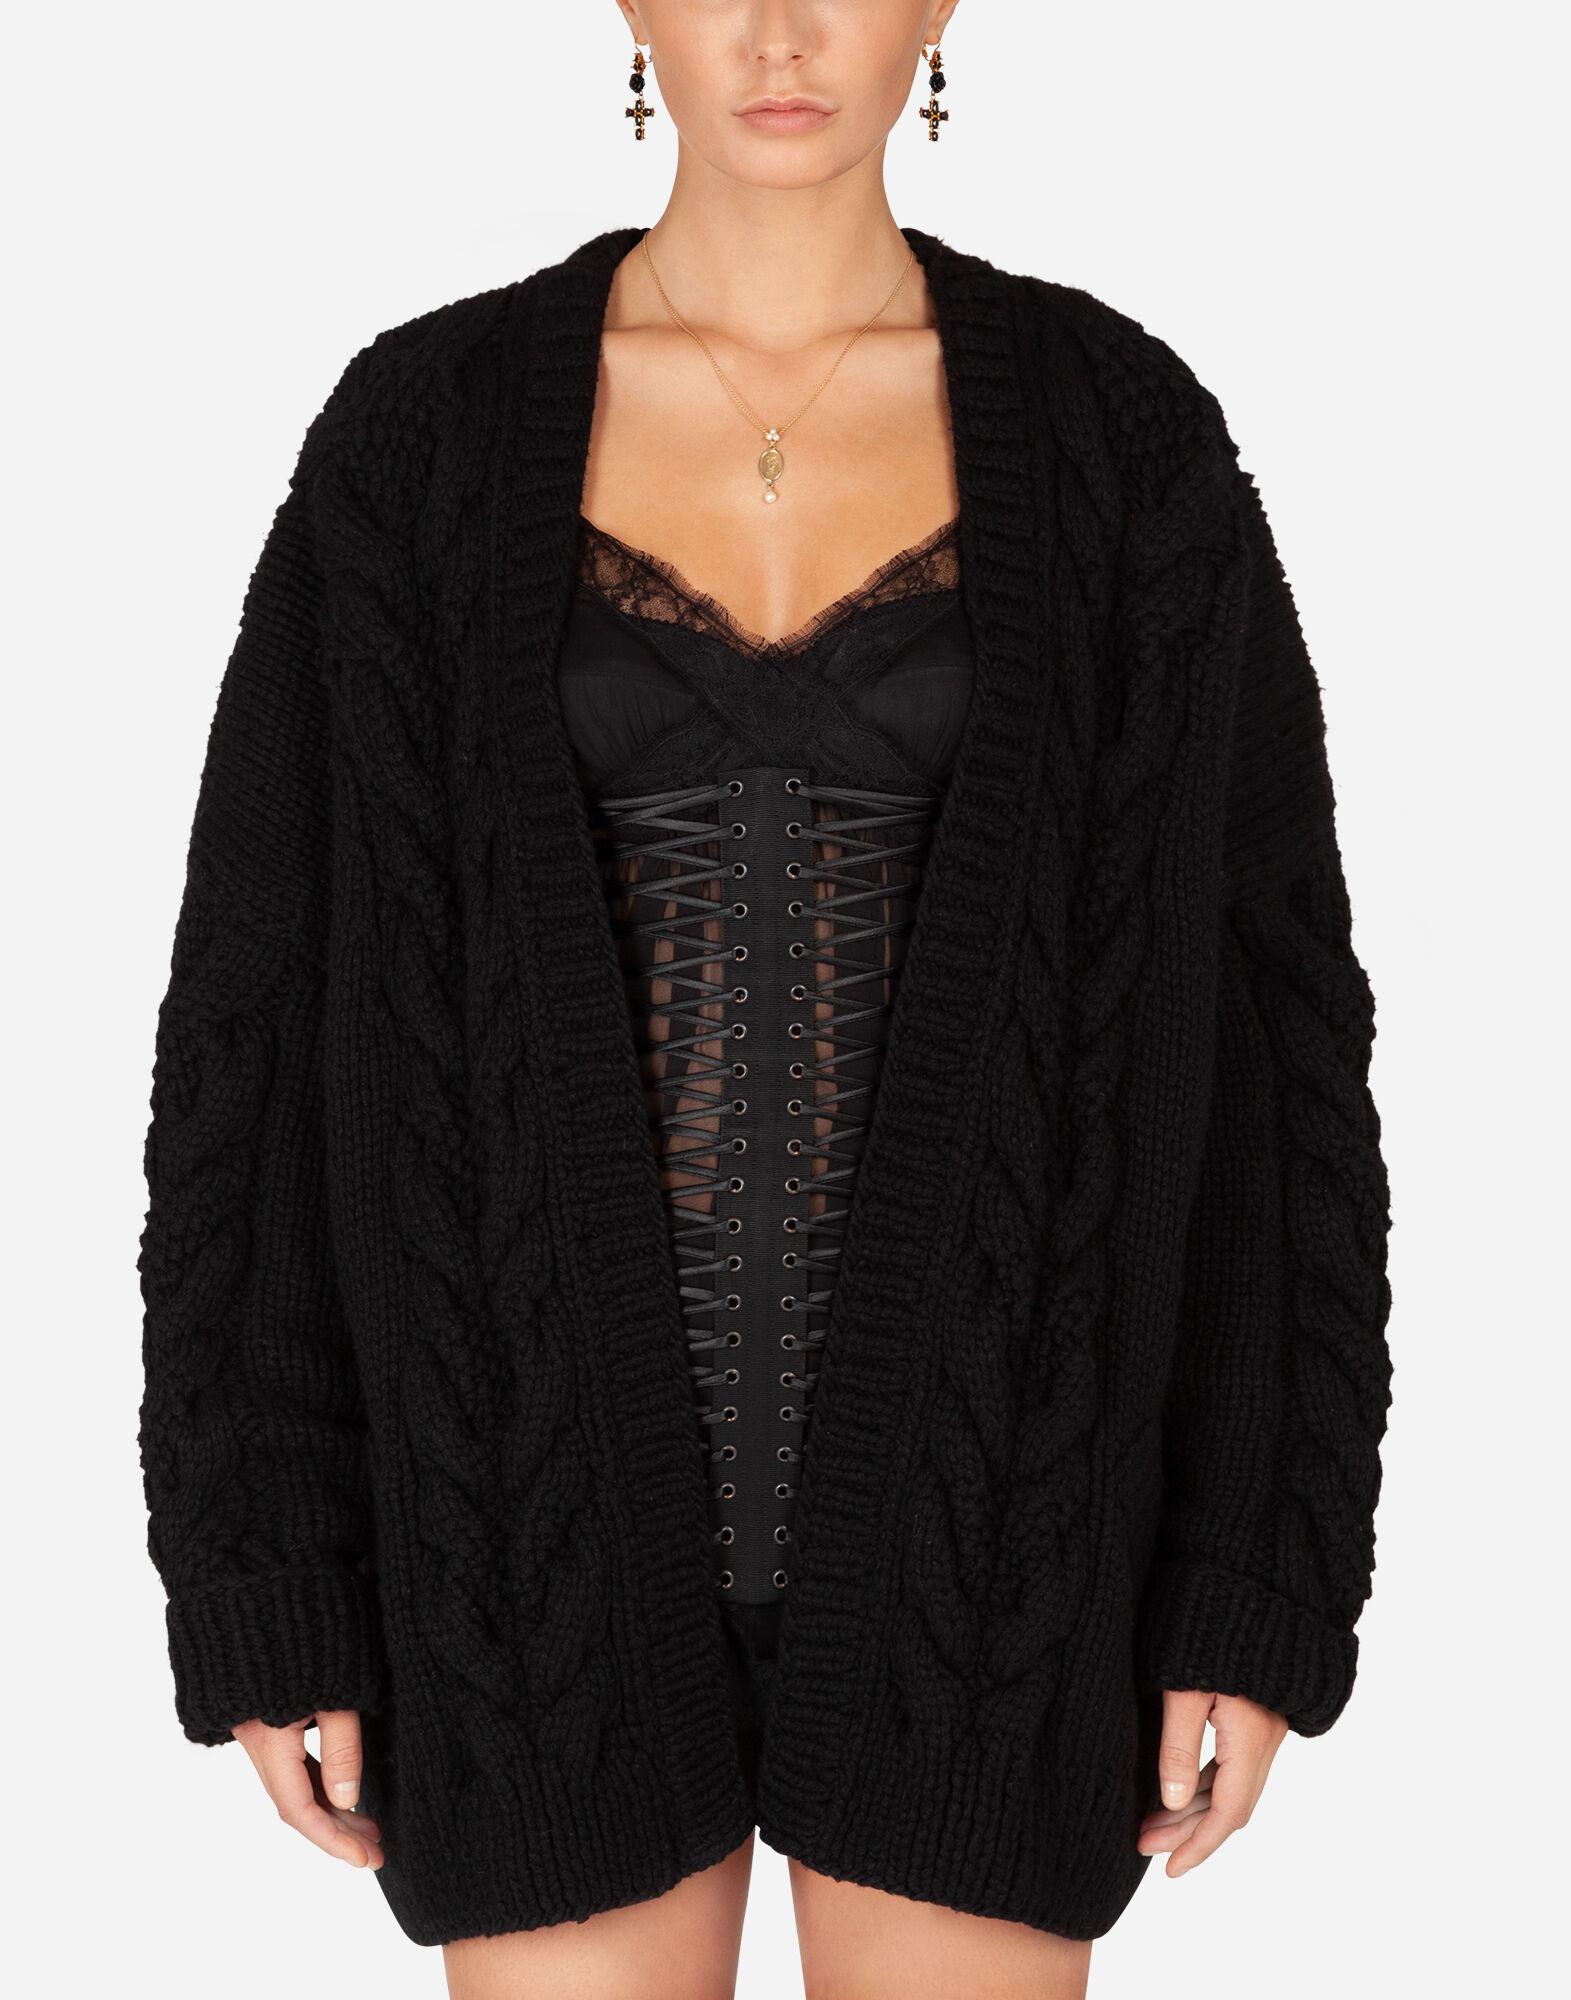 Long-sleeved wool and cashmere cardigan